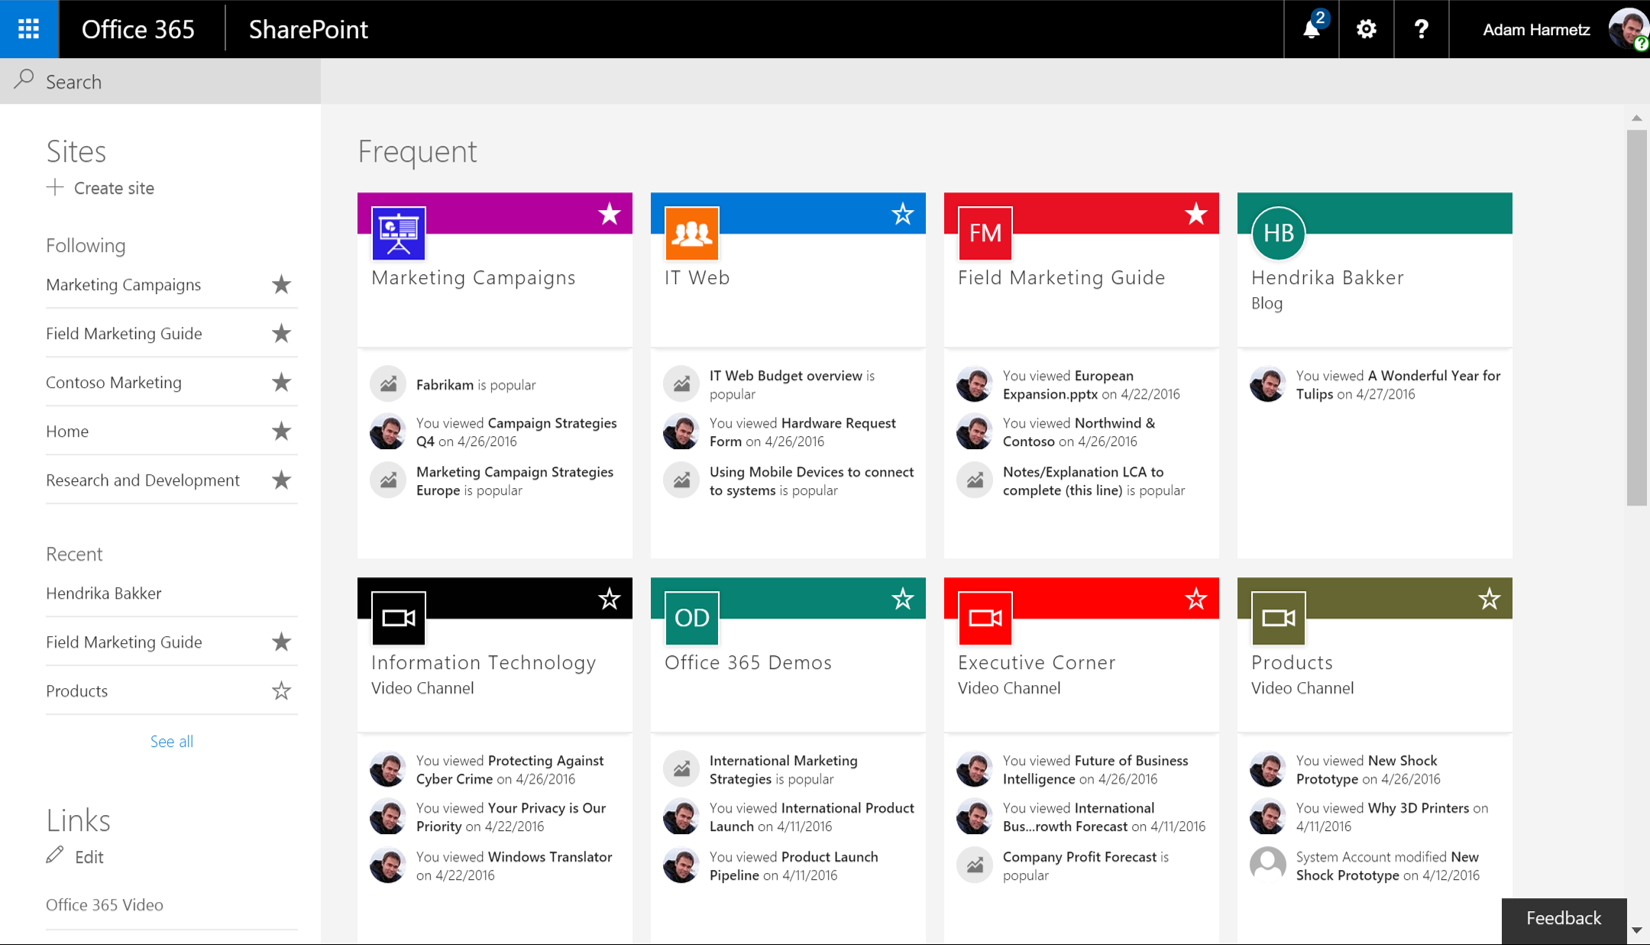 The Future of SharePoint - it's here!